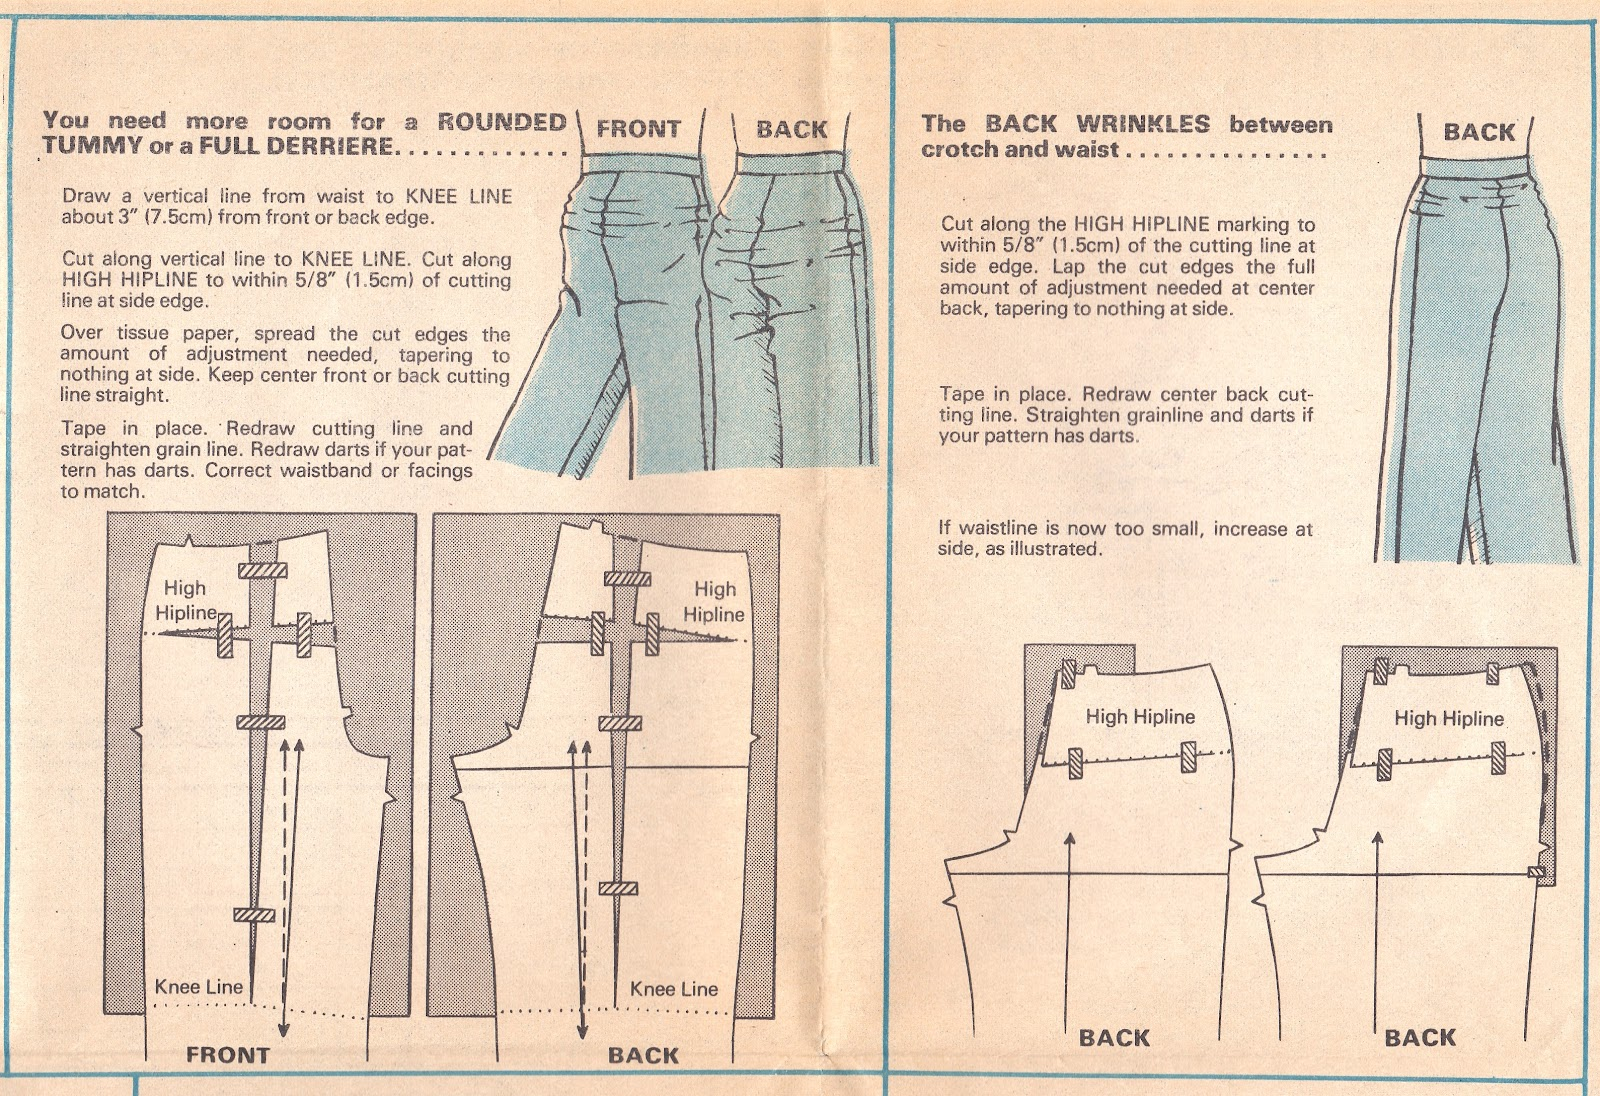 Cation designs sewing pants is easy altering your pants pattern for a rounded tummy or full derriere or swayback jeuxipadfo Gallery